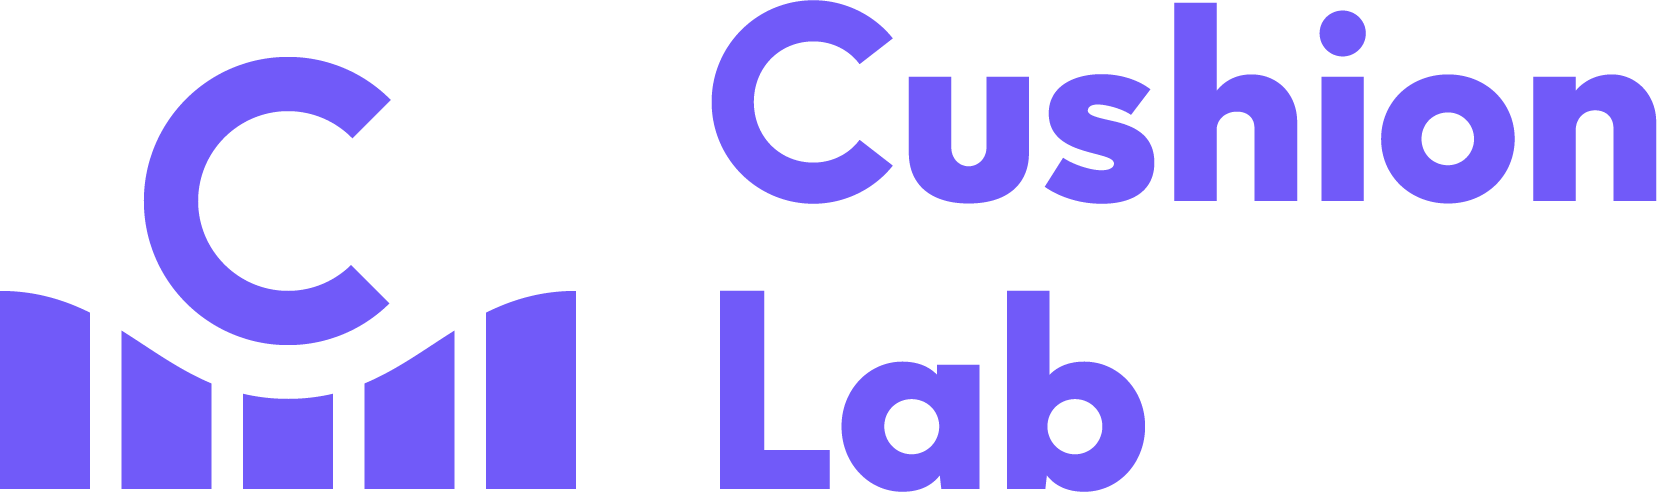 Cushion Lab LLC